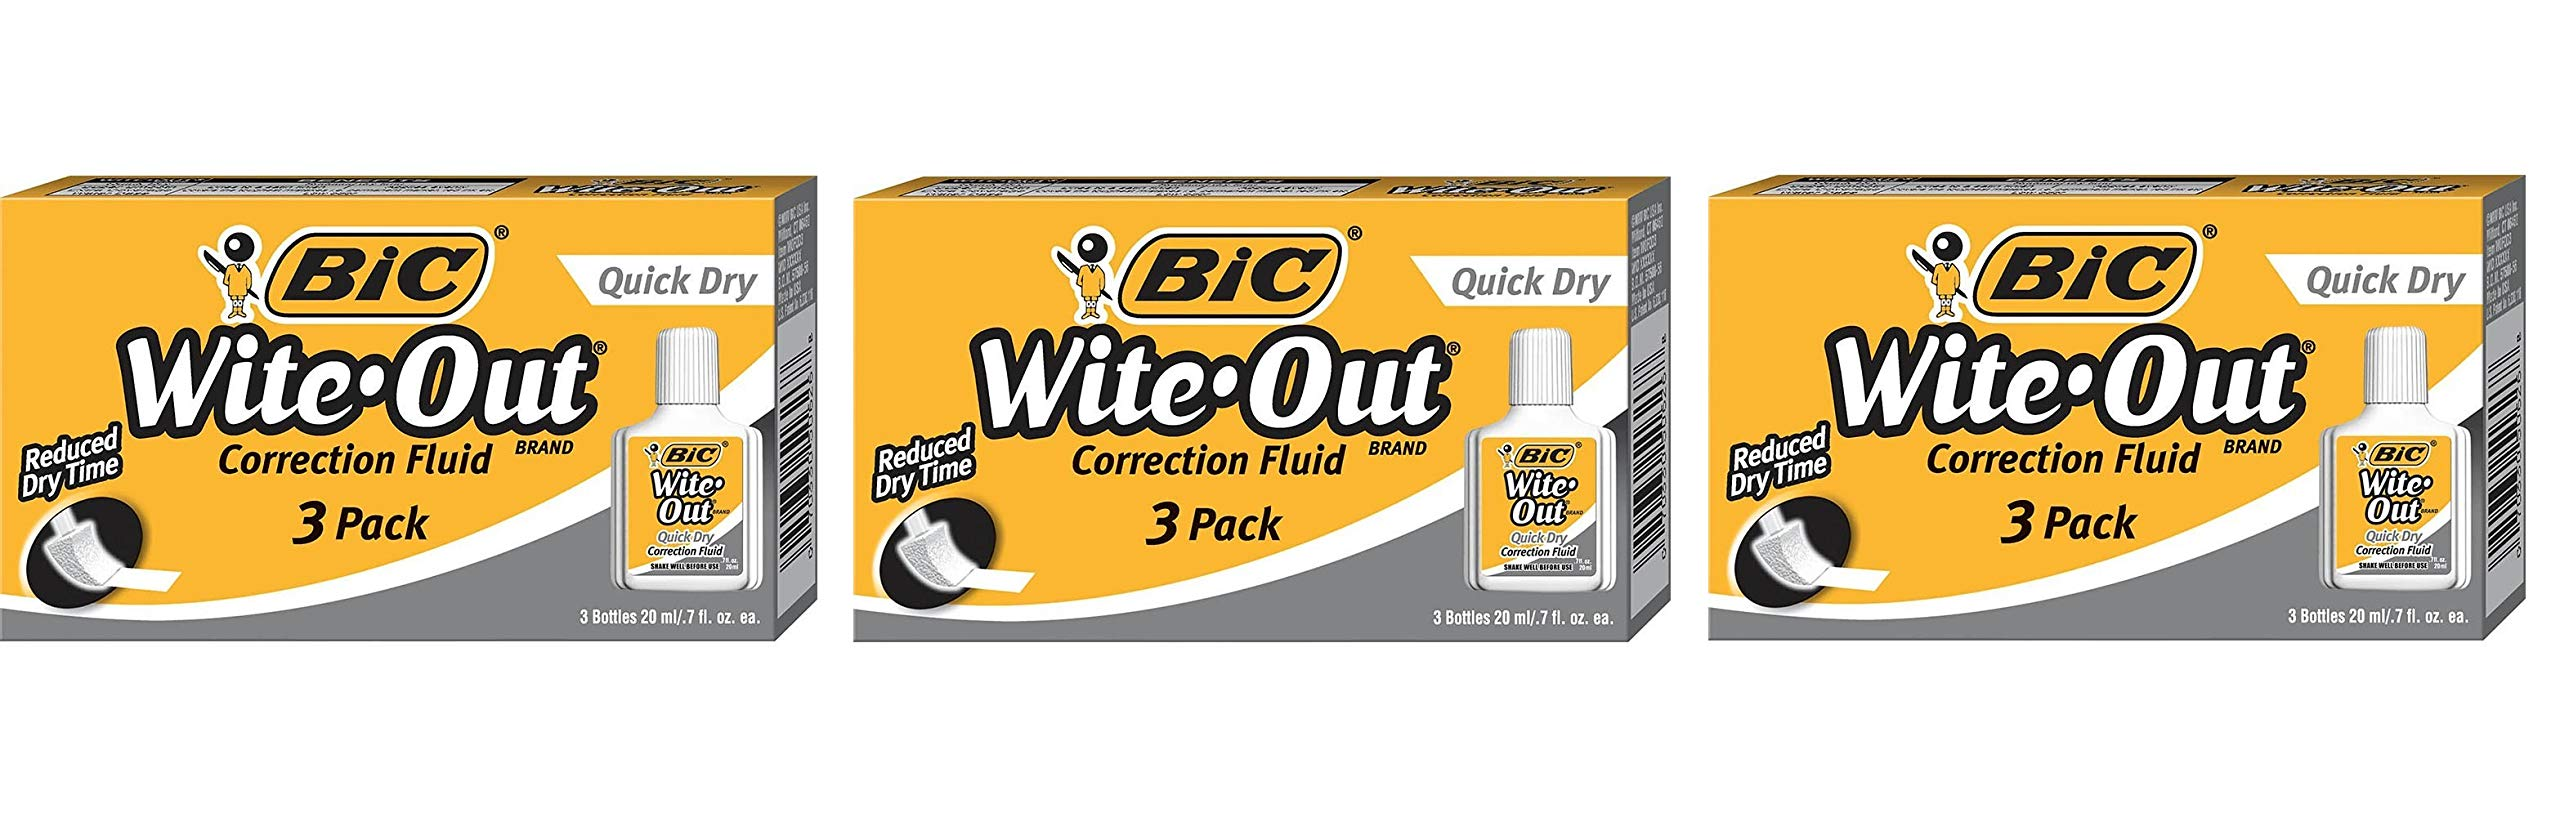 BIC Wite-Out Quick Dry Correction Fluid 20ml Bottle, 3 Pack (3 Bottles) by BIC